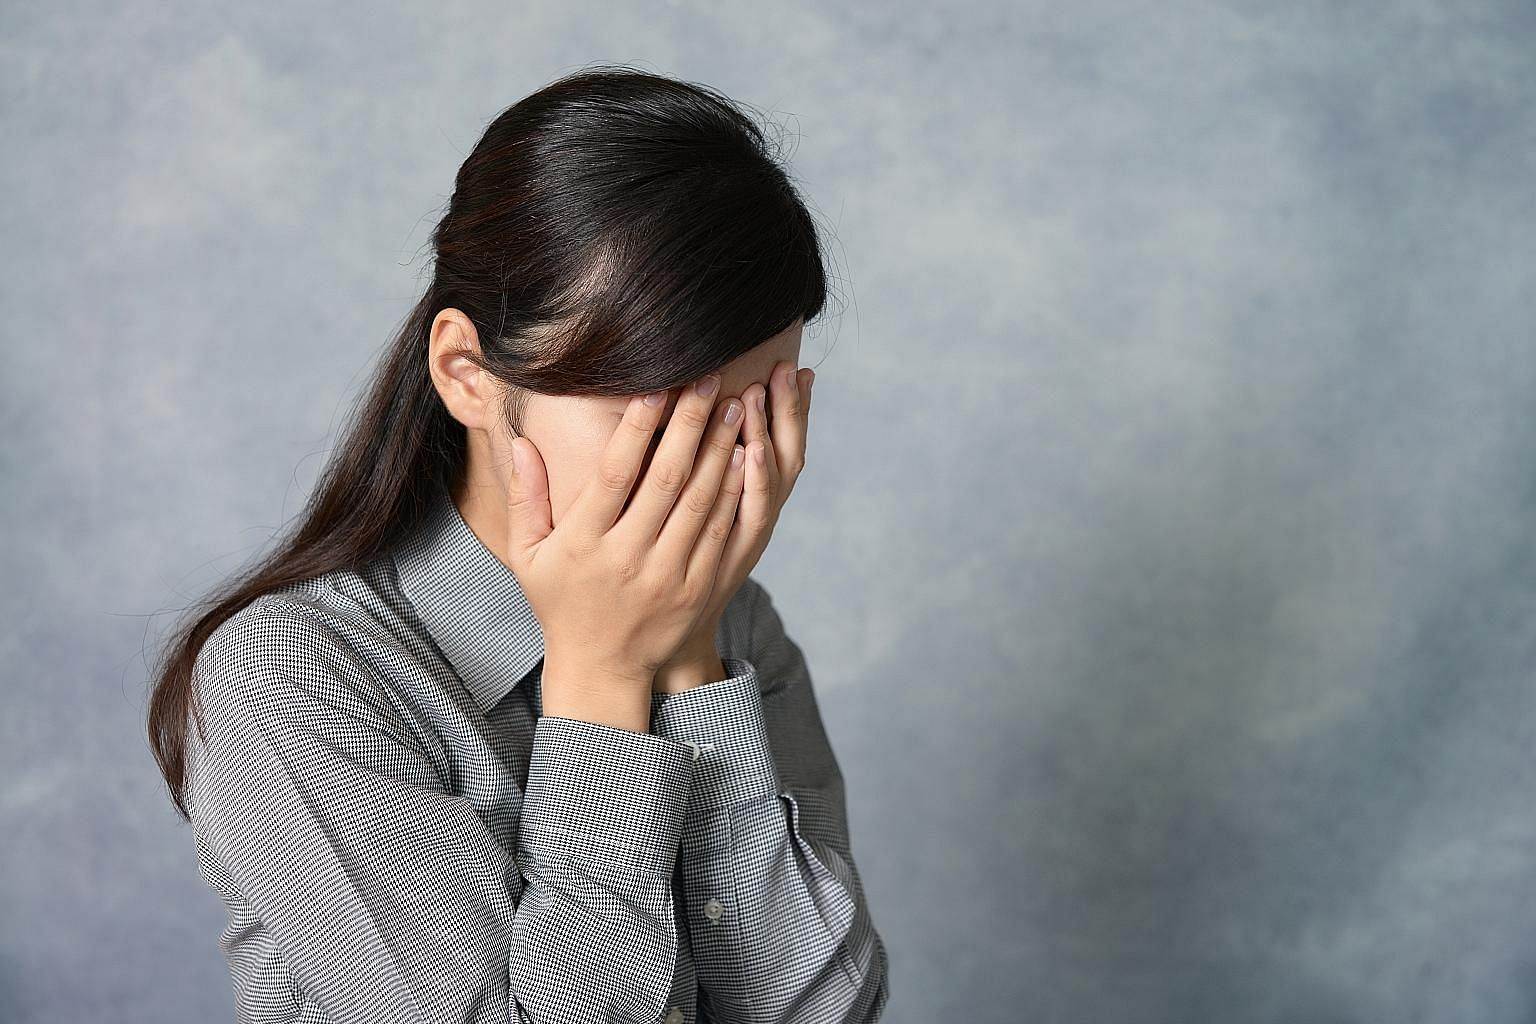 Crying is a normal coping mechanism that helps unbottle pent-up emotions of sadness, frustration and fear.